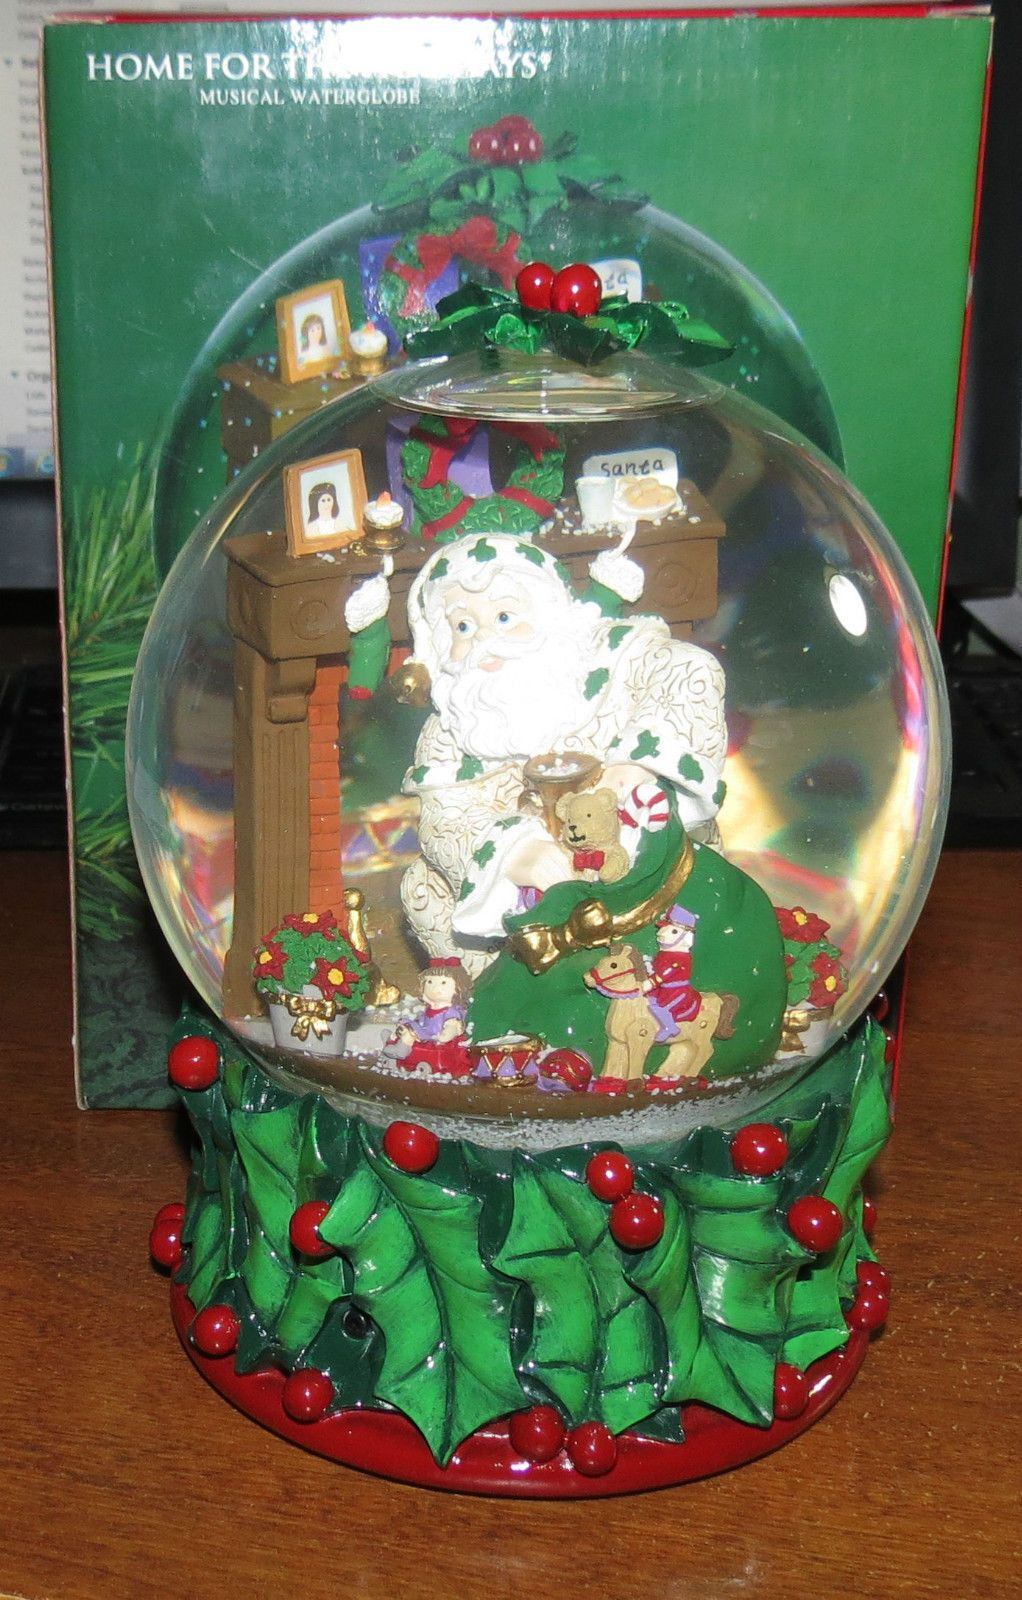 Home for the Holidays Holly Holidays 2002 Snowglobe NEW! • $22.00 • PicClick